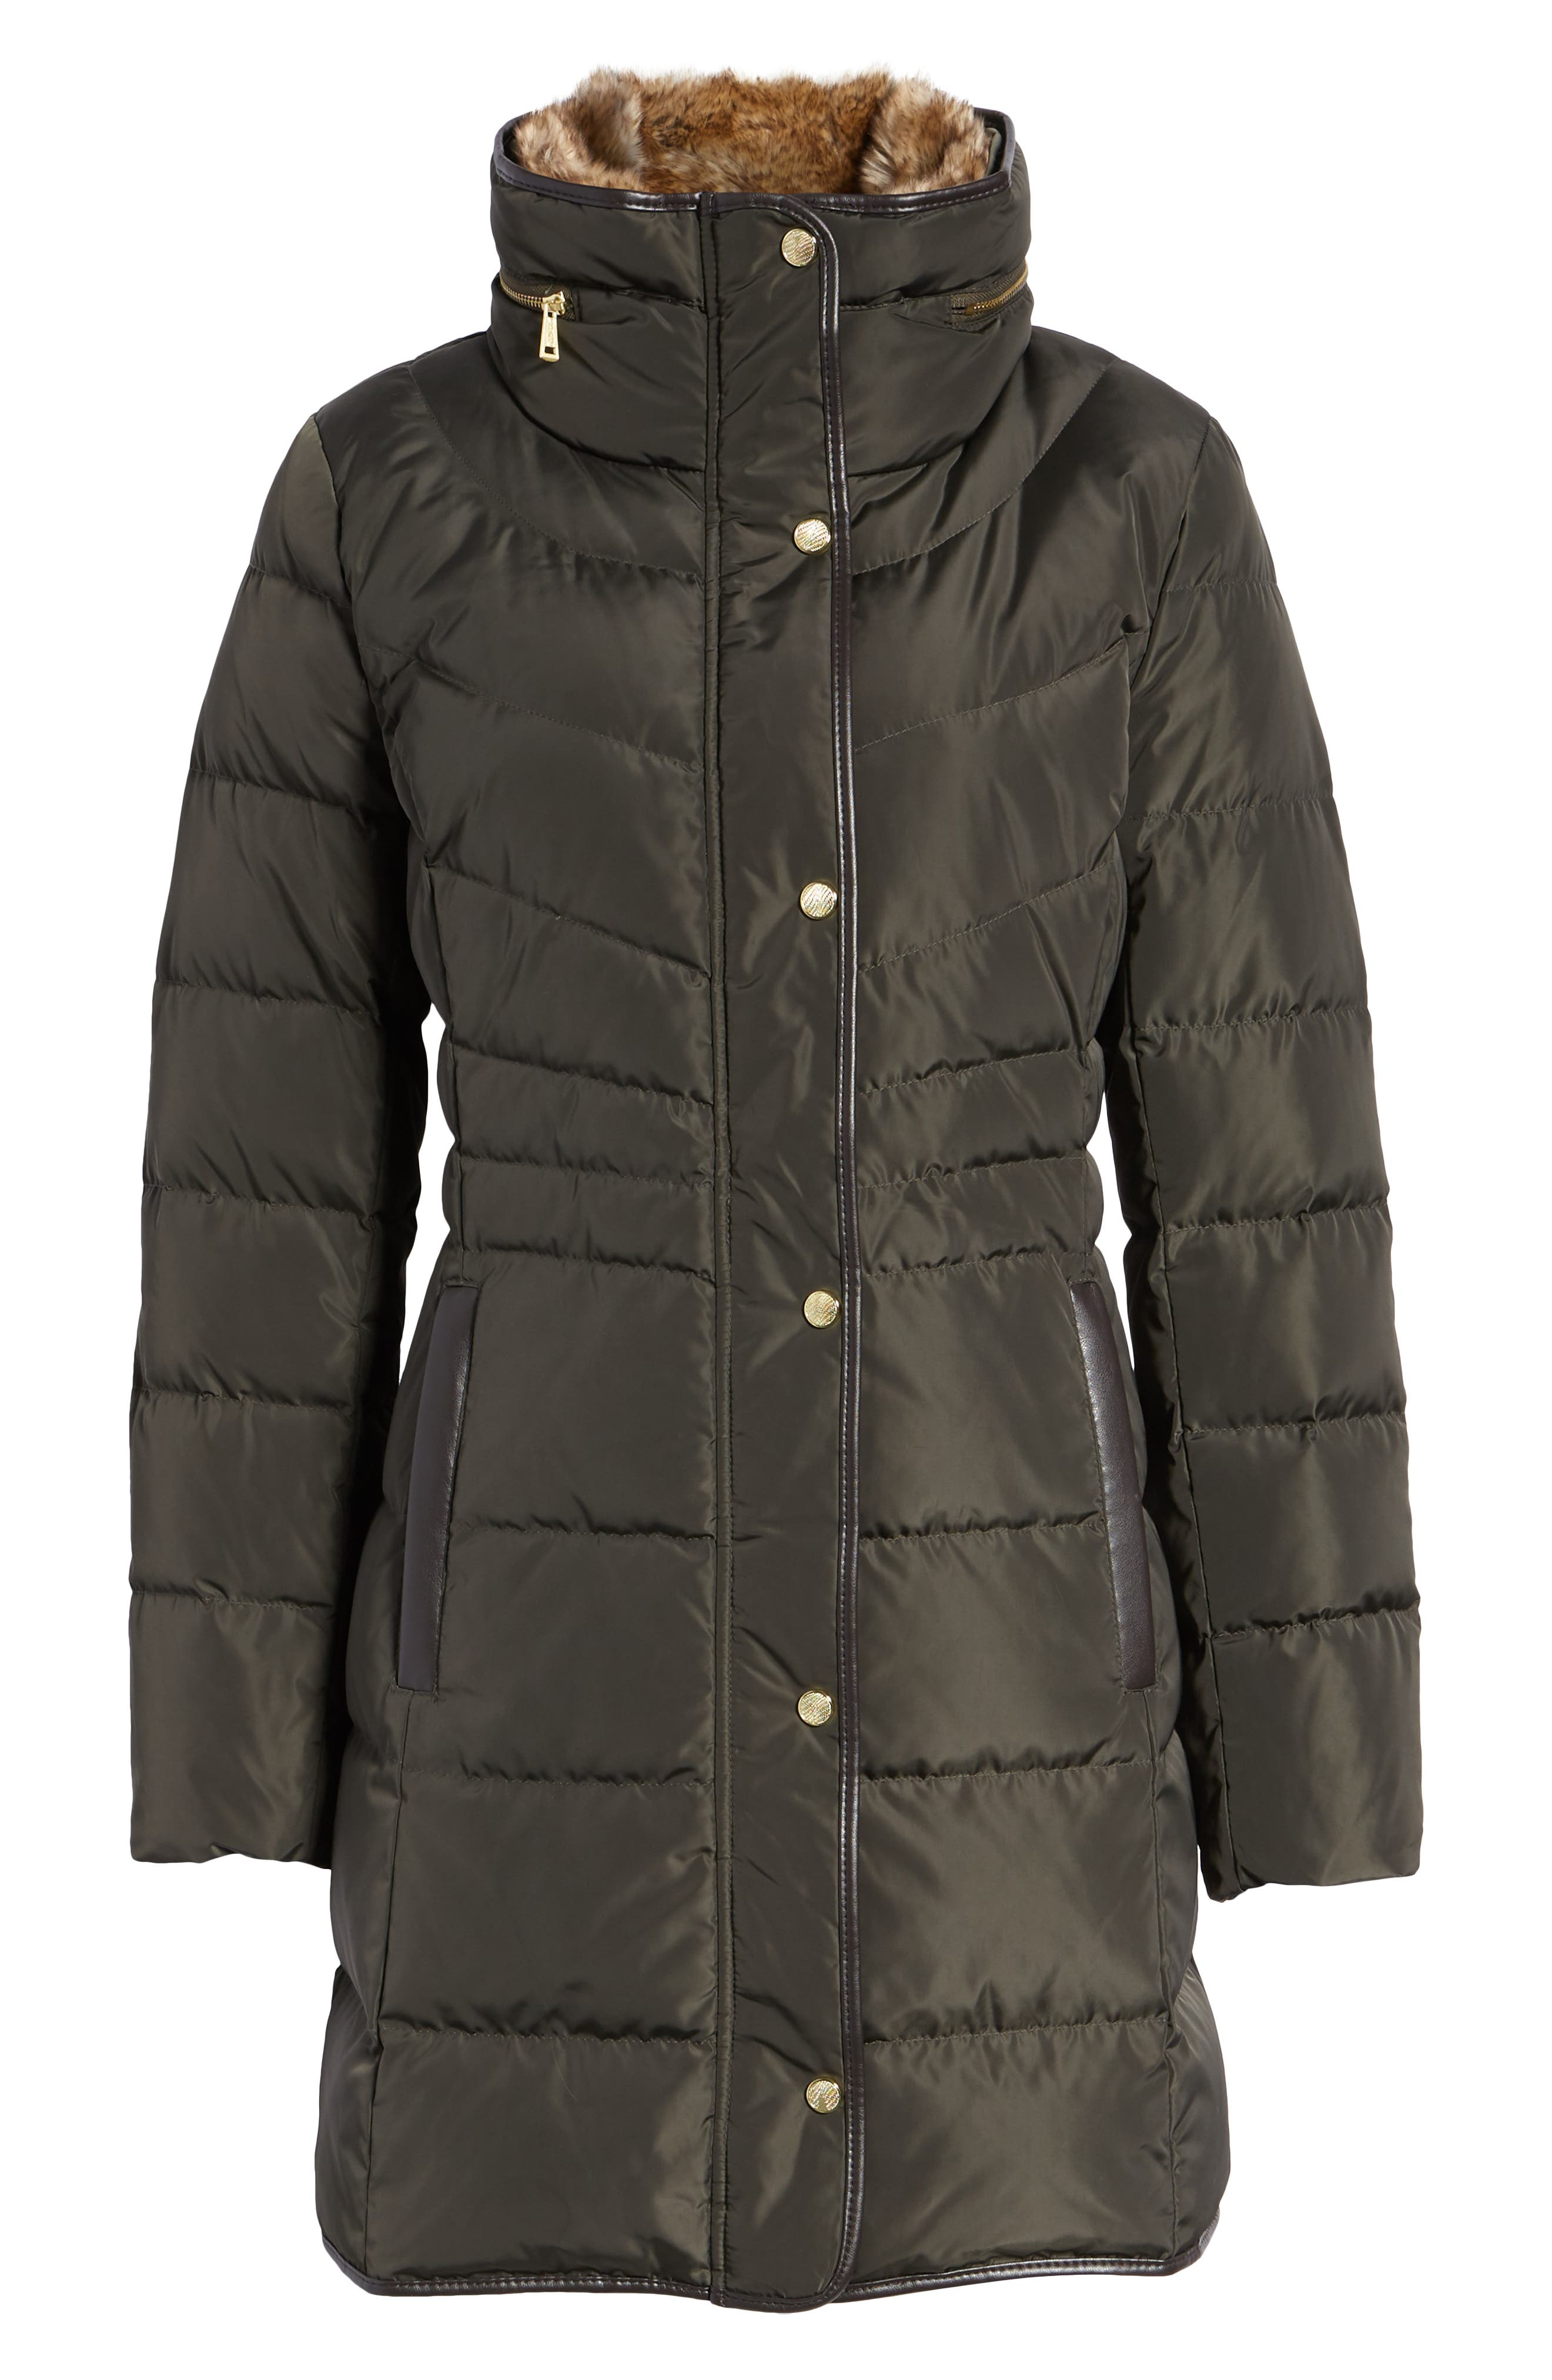 Cole Haan Quilted Down & Feather Fill Jacket with Faux Fur Trim,                             Alternate thumbnail 6, color,                             FOREST